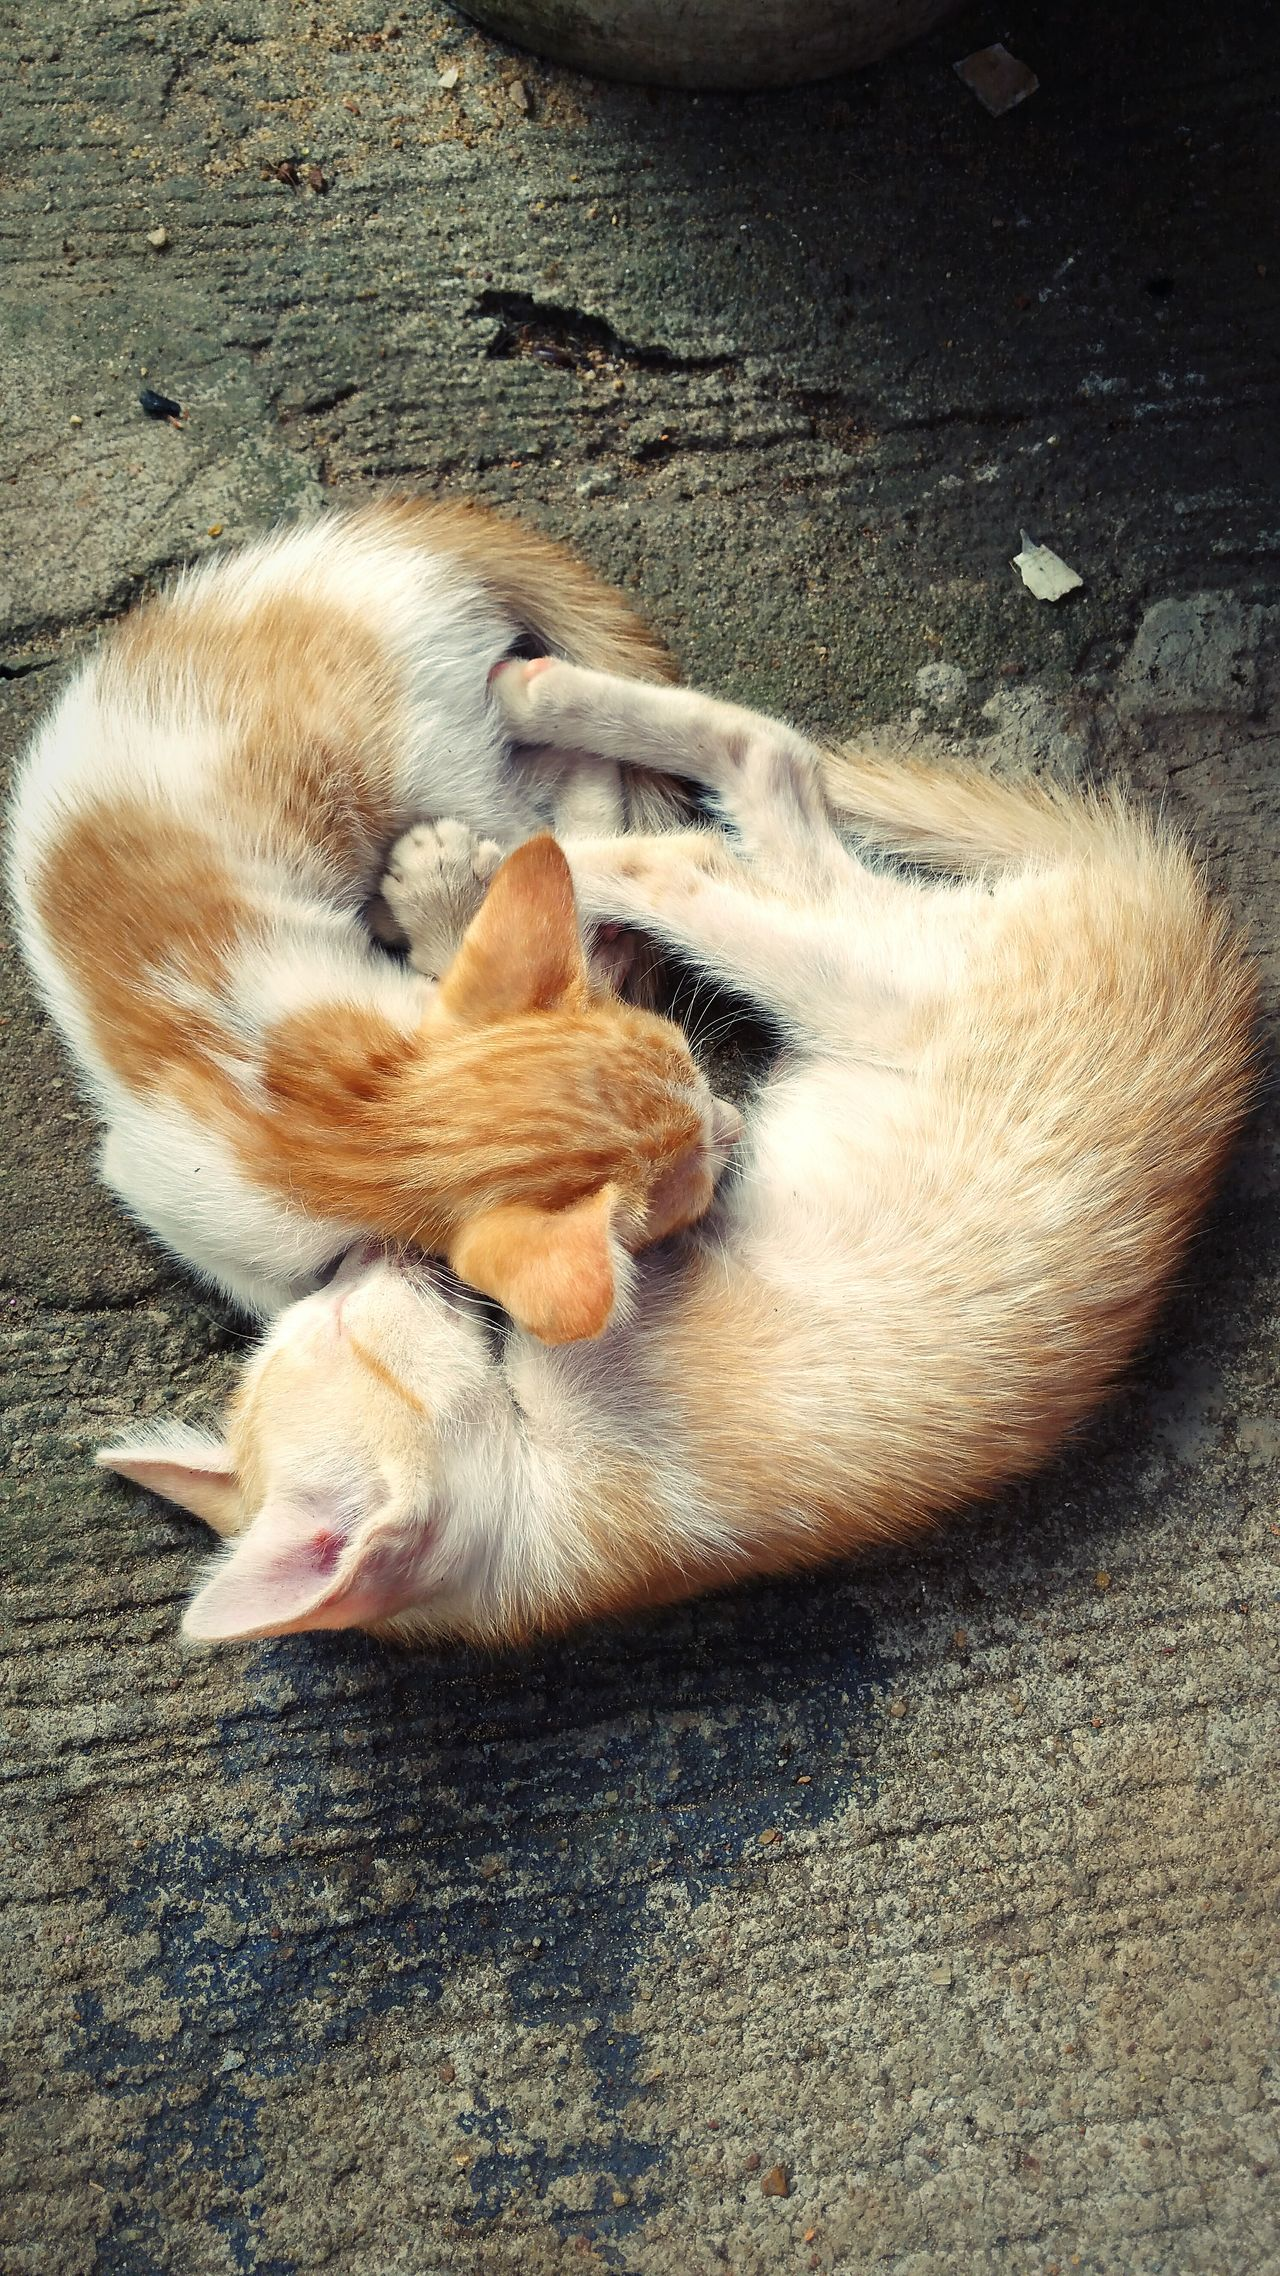 Was on a field trip when these two decided to snuggle! Yin and Yang almost! Kittens Ying Yang Field Trip Galaxynote4 CuteAF Snugglebuddy Sibling Love